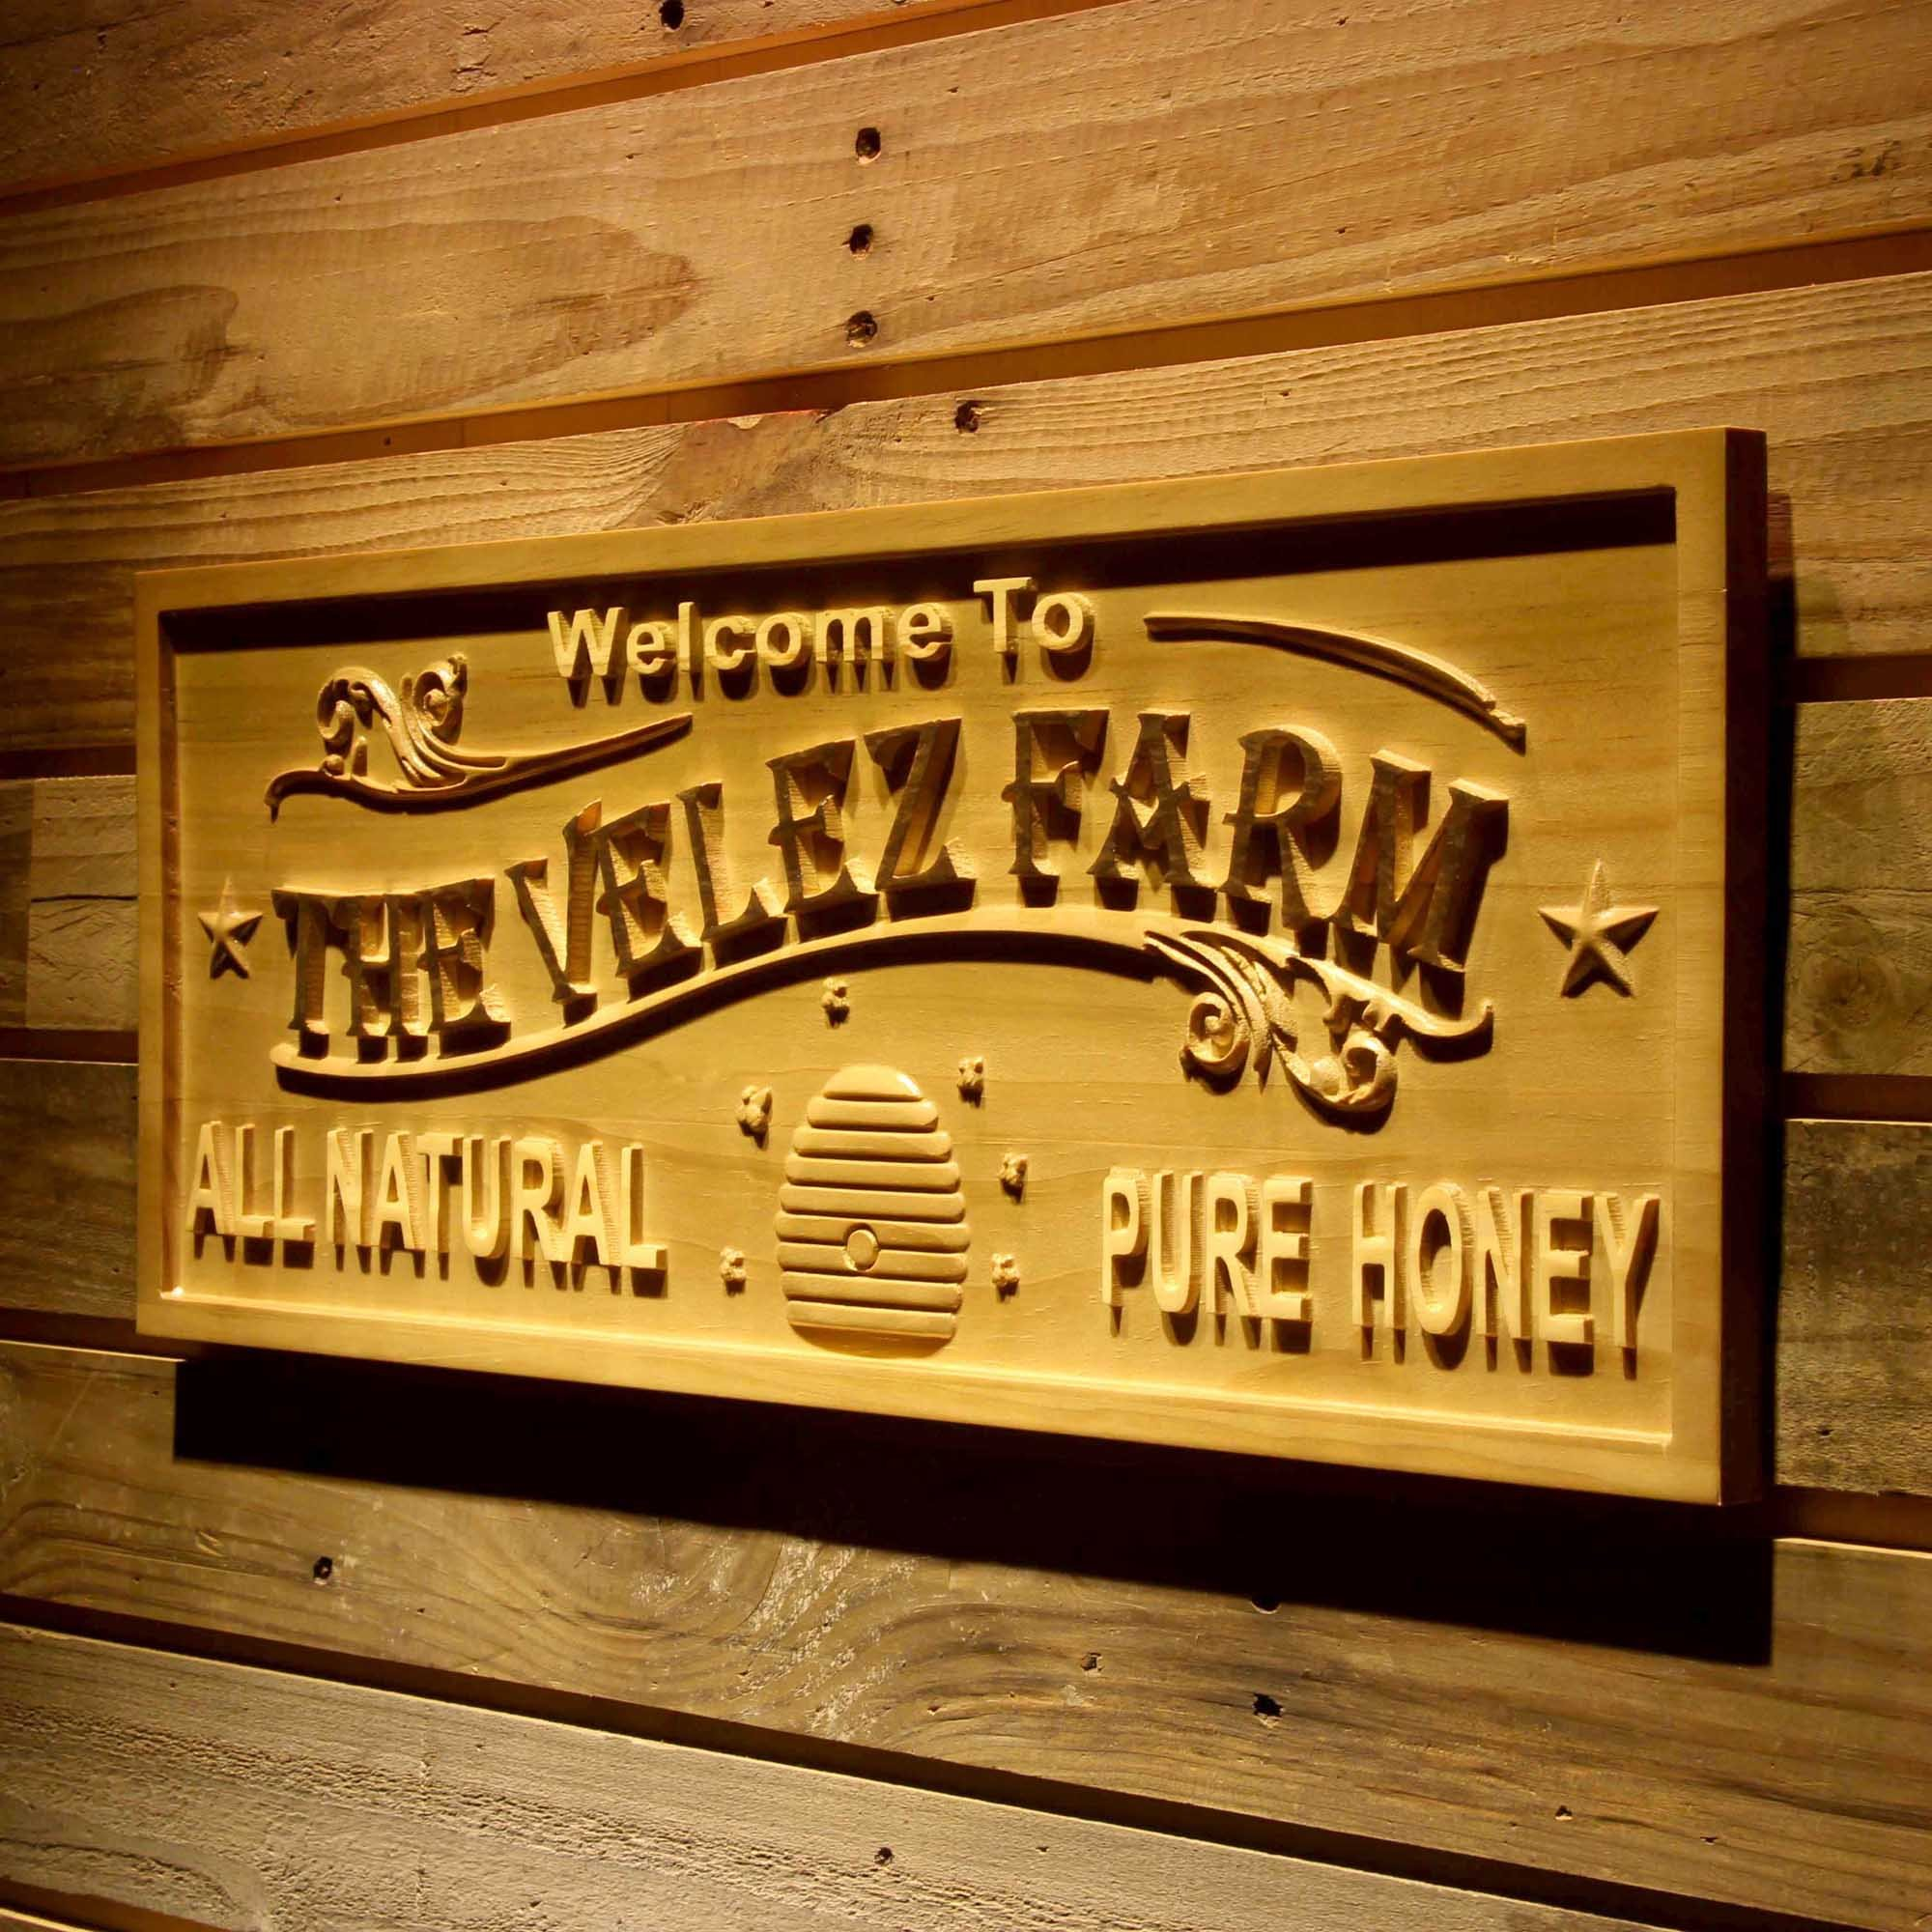 ADVPRO wpa0431 Farm Name Personalized Honey Bee Decoration Wood Engraved Wooden Sign - Standard 23'' x 9.25'' by ADVPRO